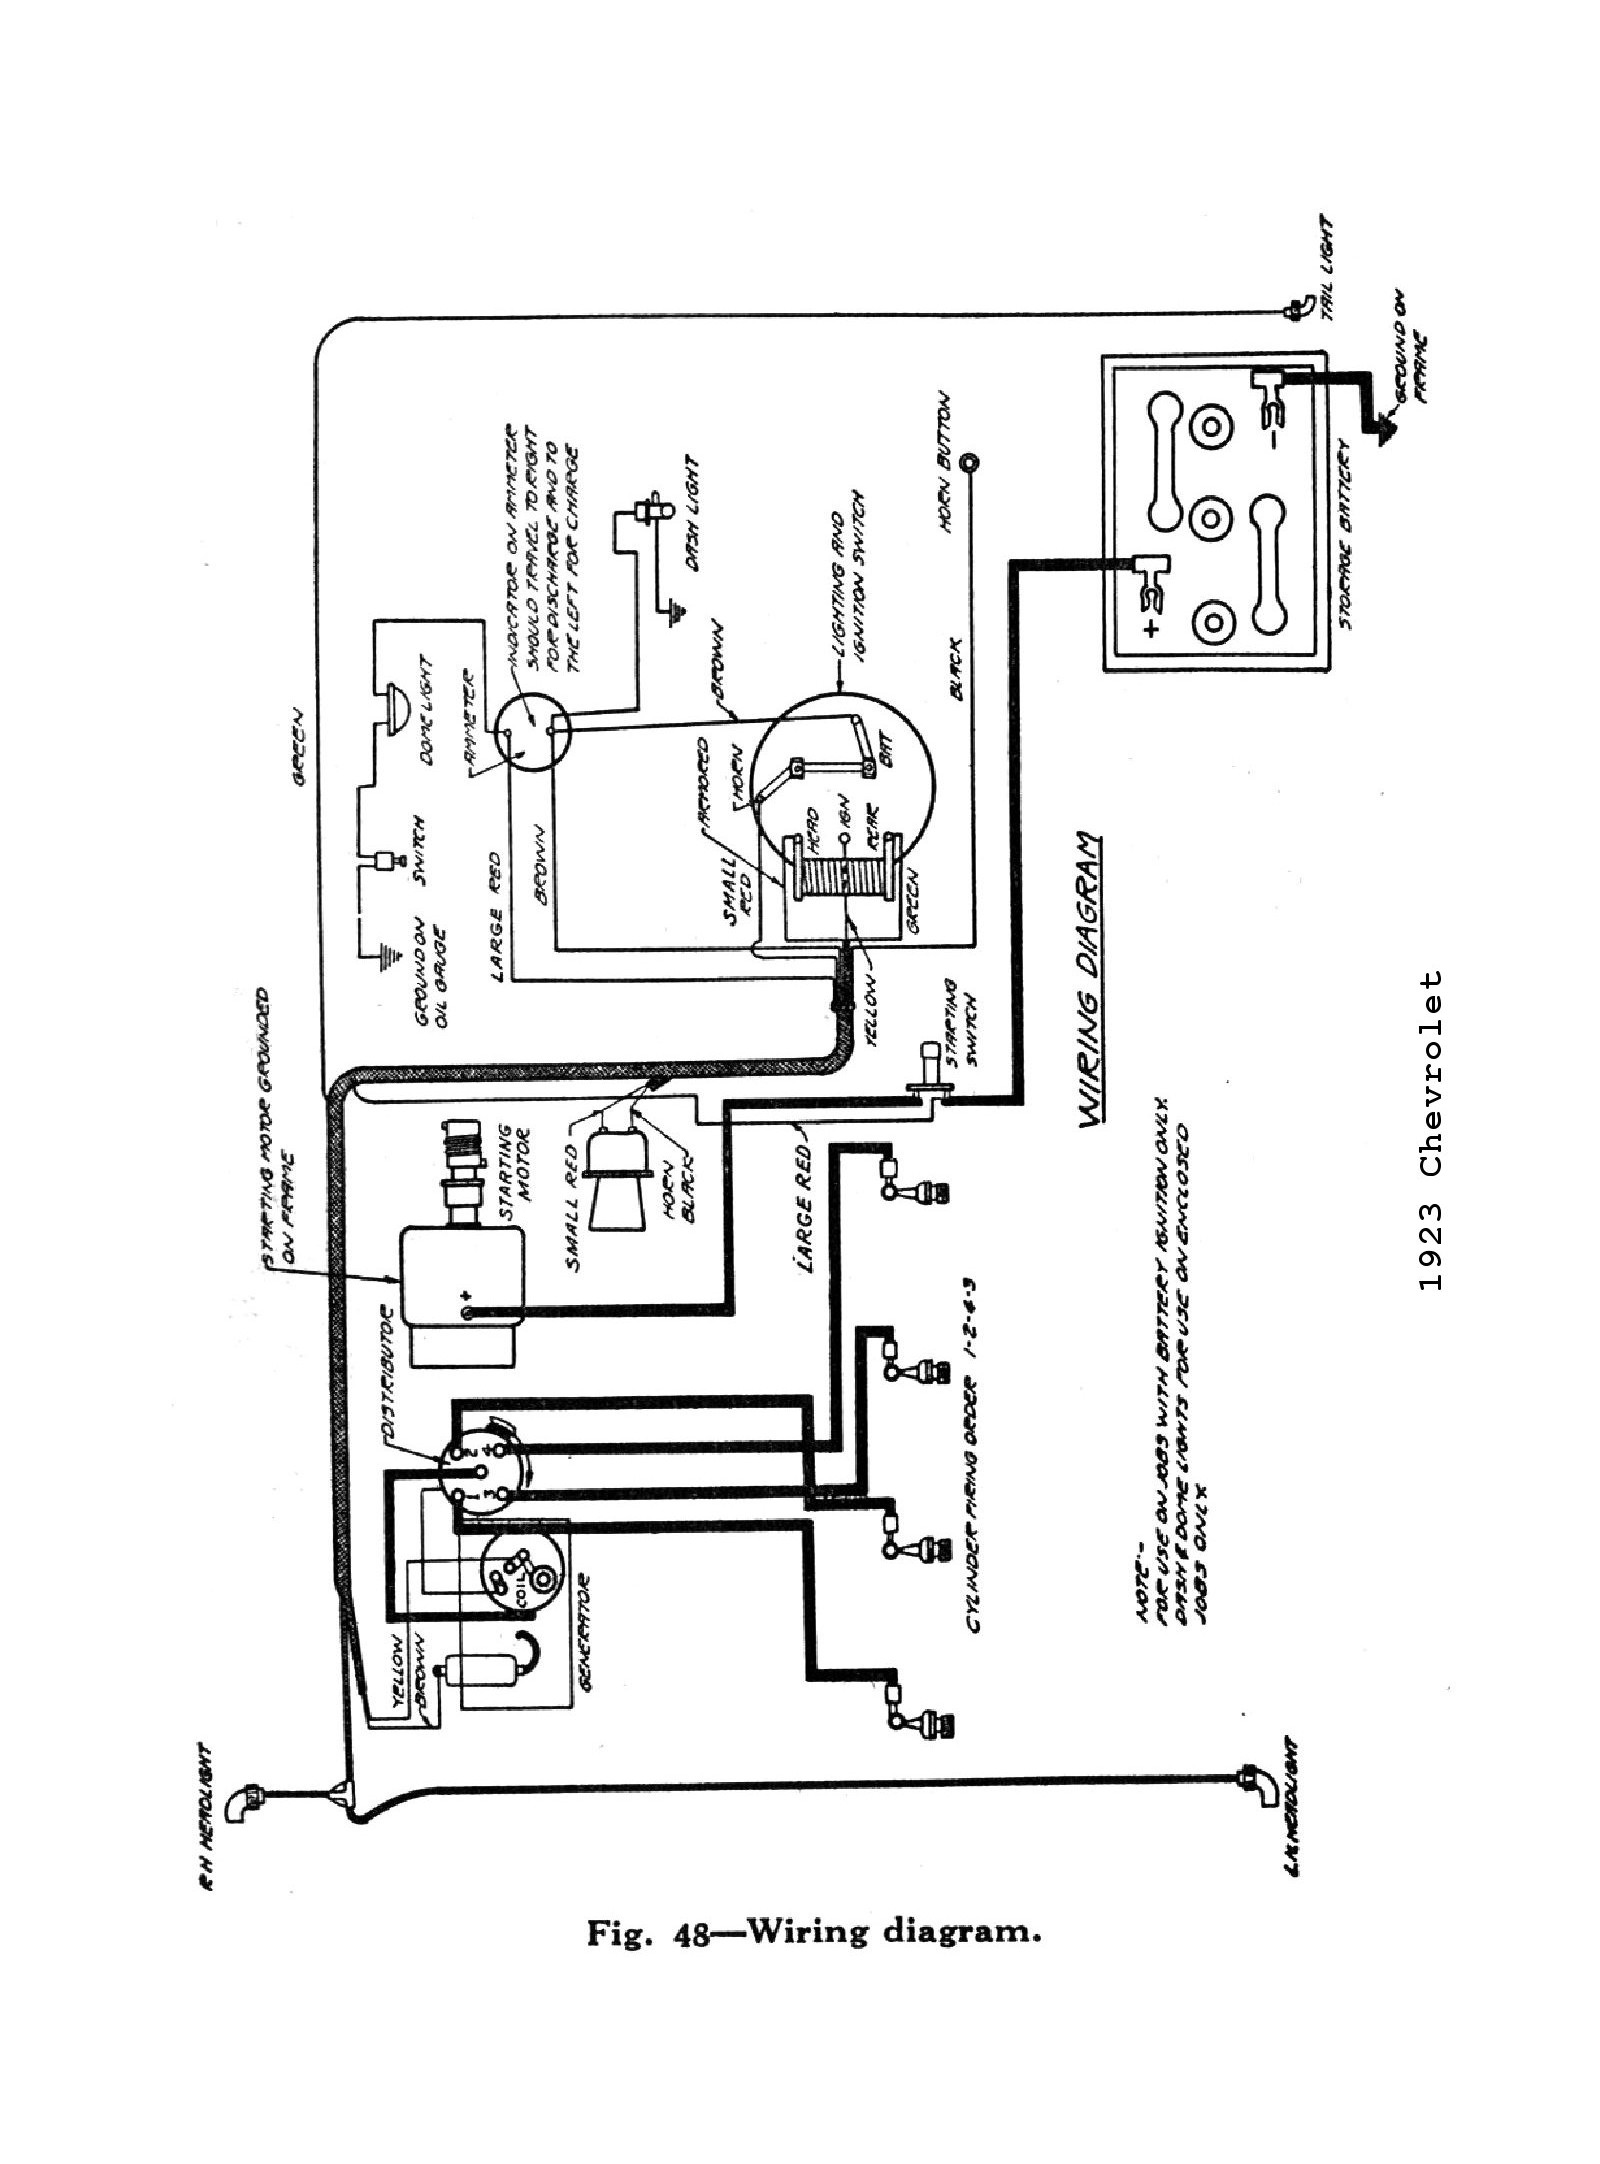 Chevy wiring diagrams 1923 general wiring cheapraybanclubmaster Image collections